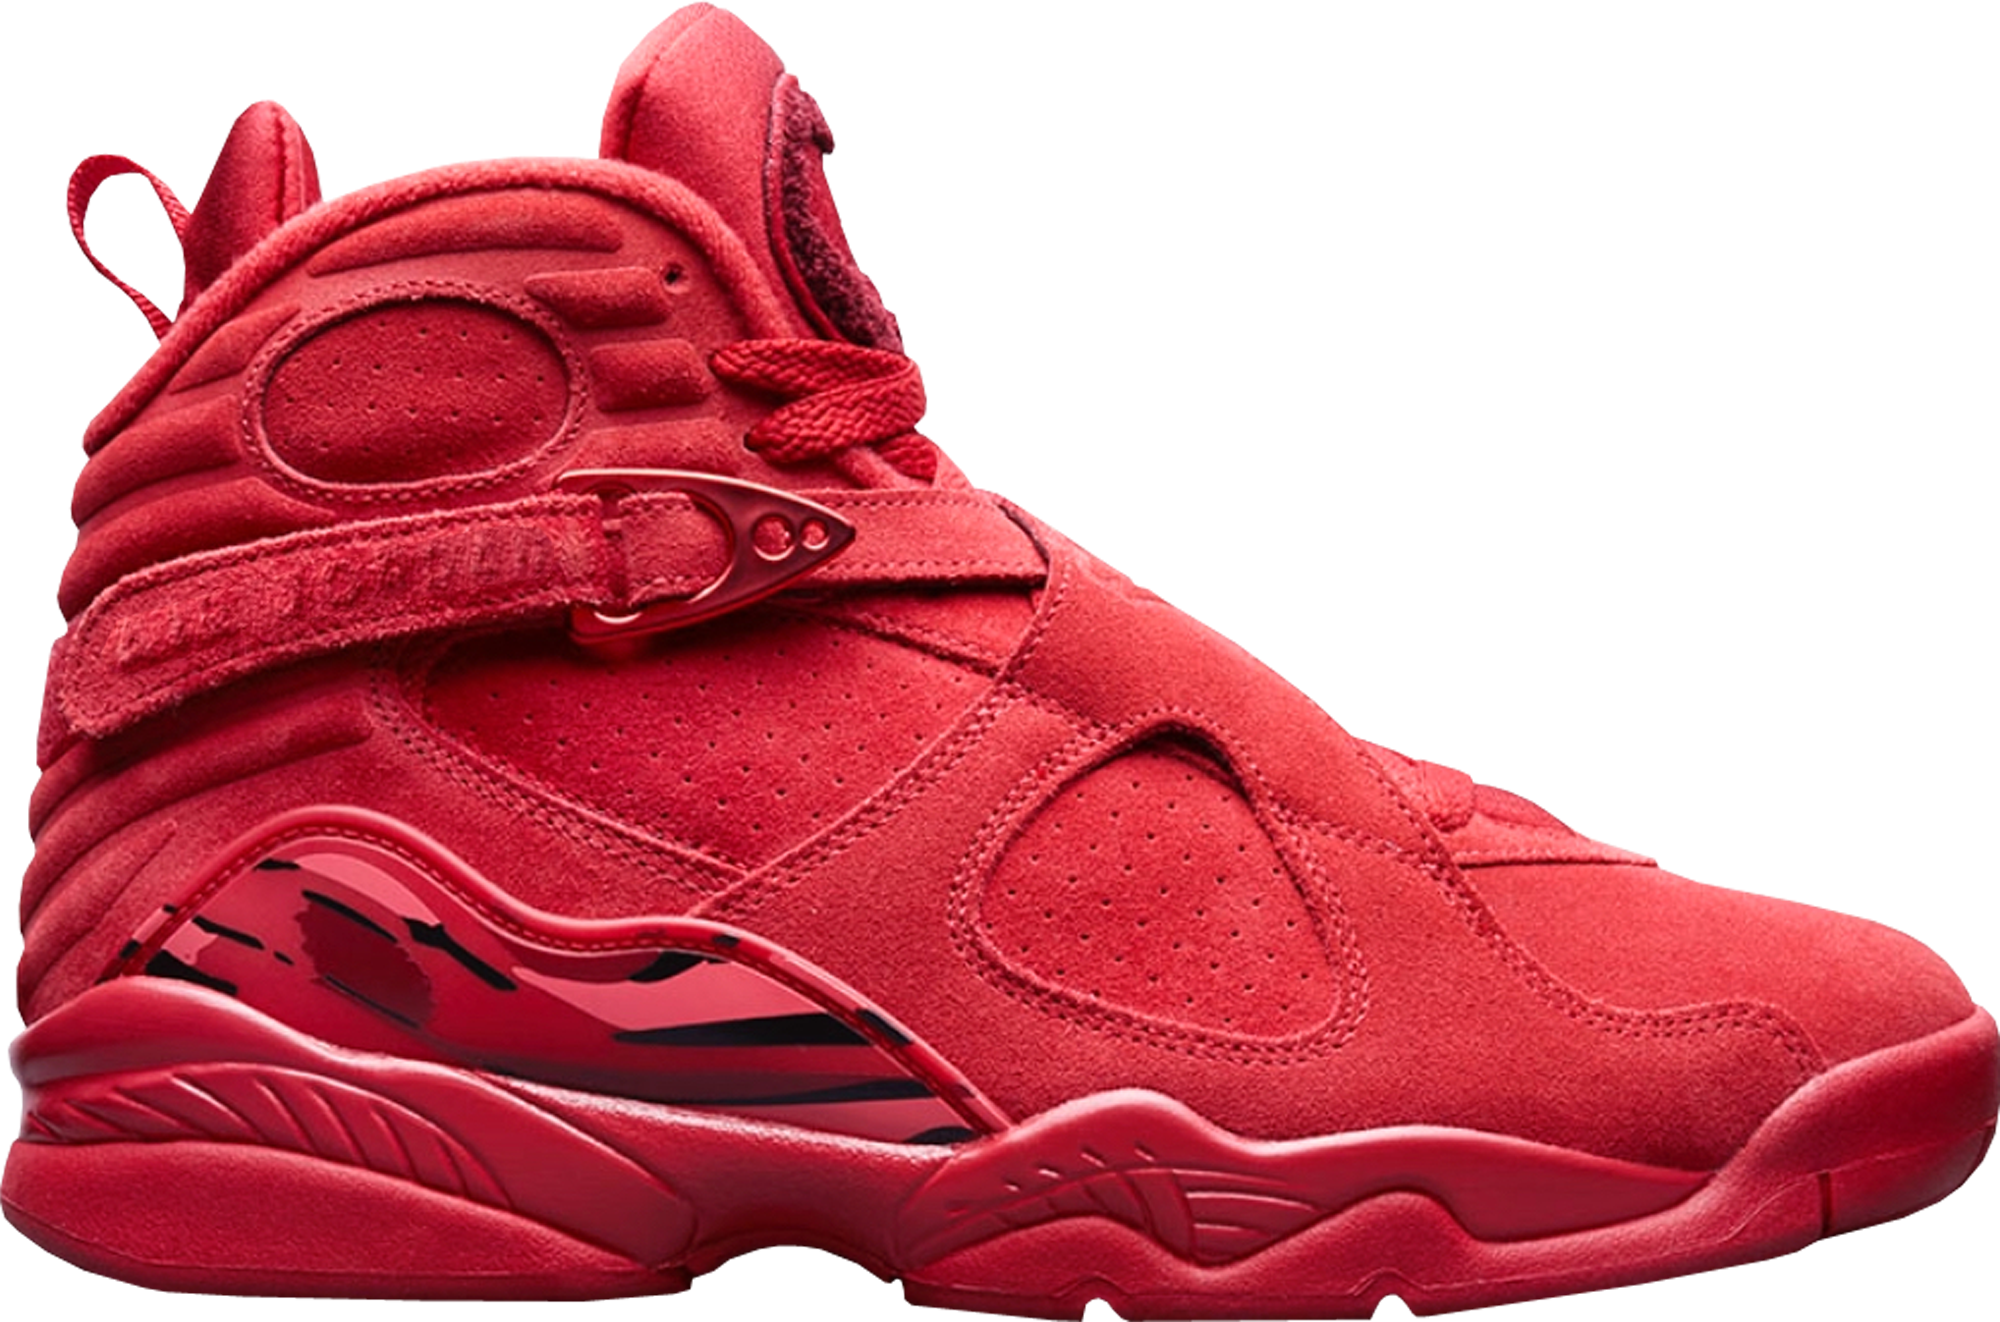 red air jordan 8 valentine's day poems